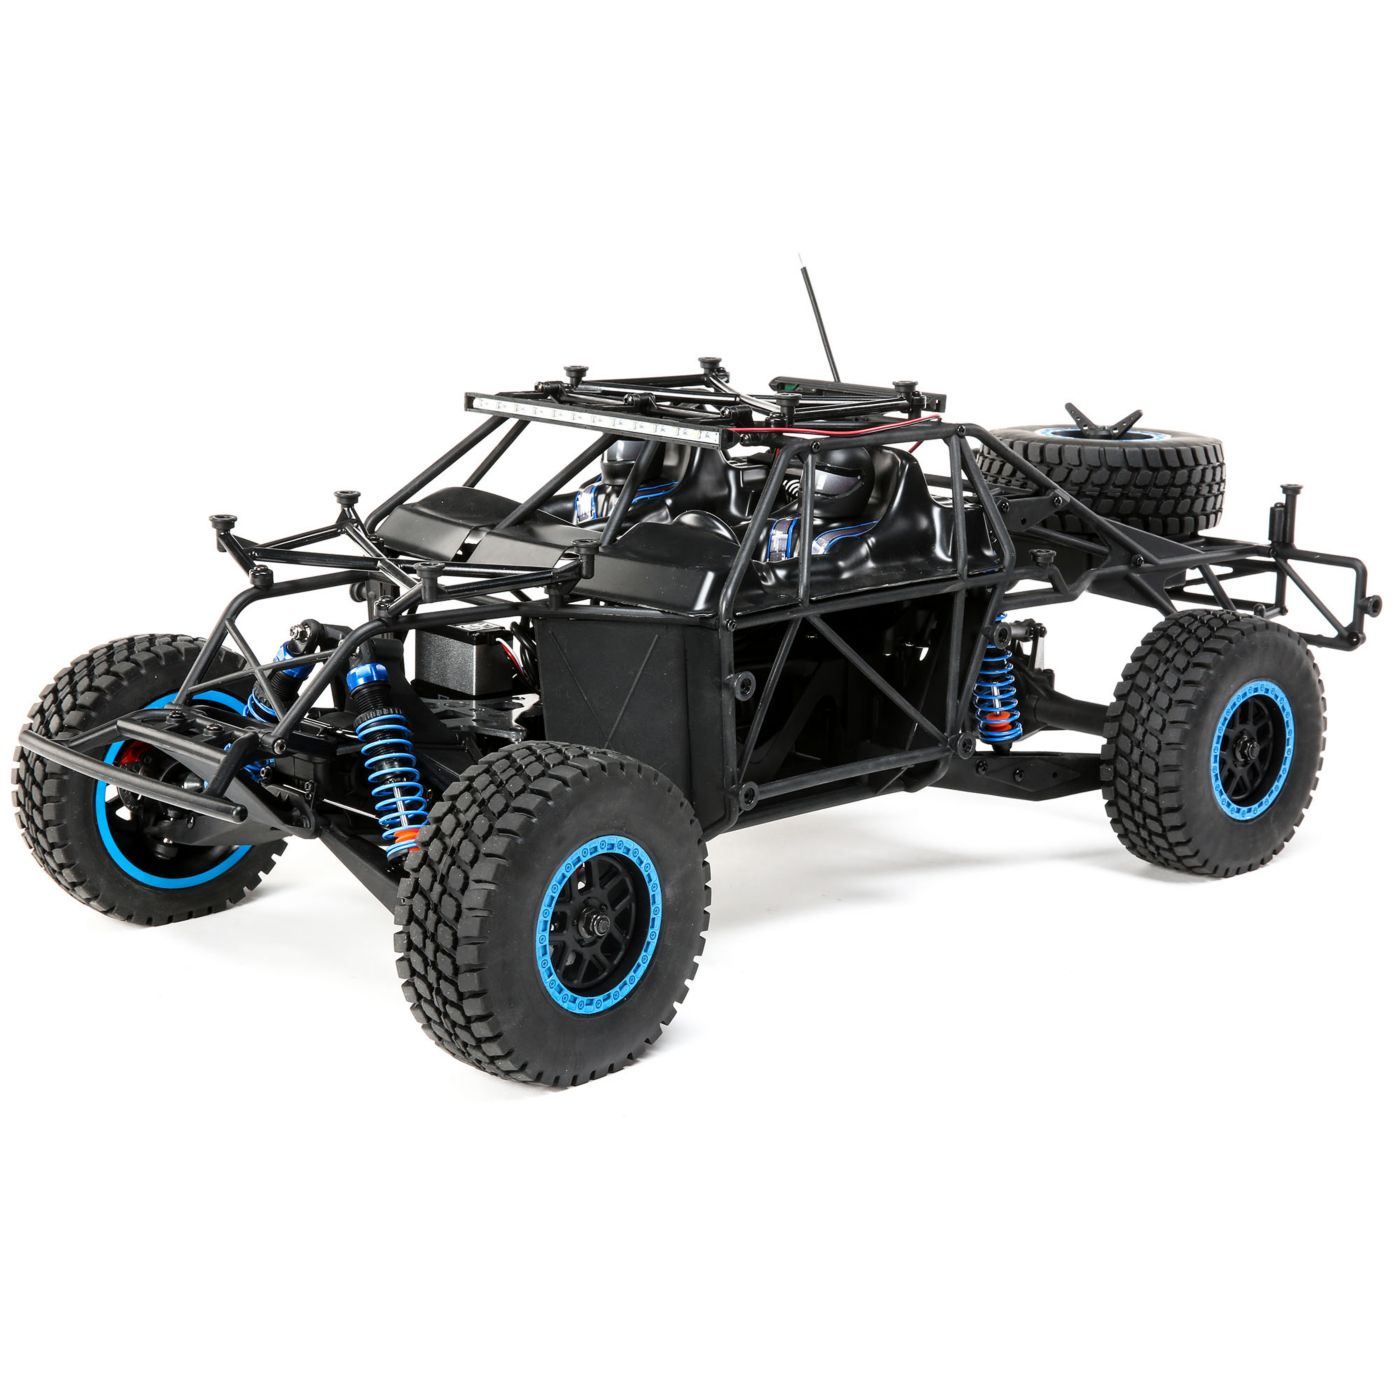 Losi Ford Raptor Baja Rey - Chassis